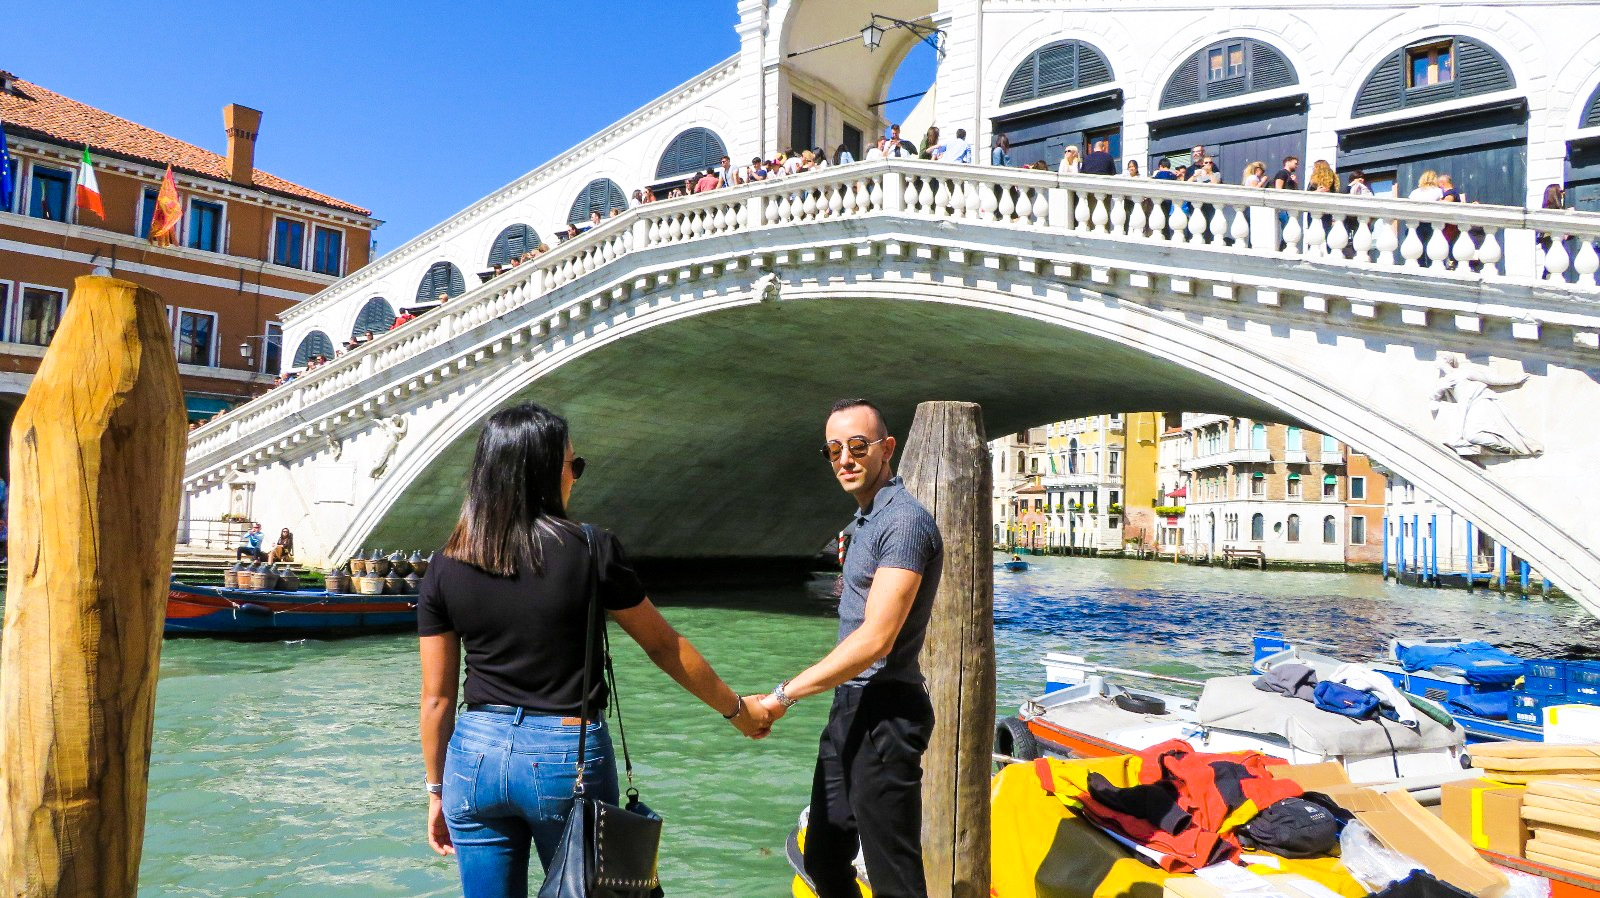 Isabella Paz, with Pierpaolo in Venice